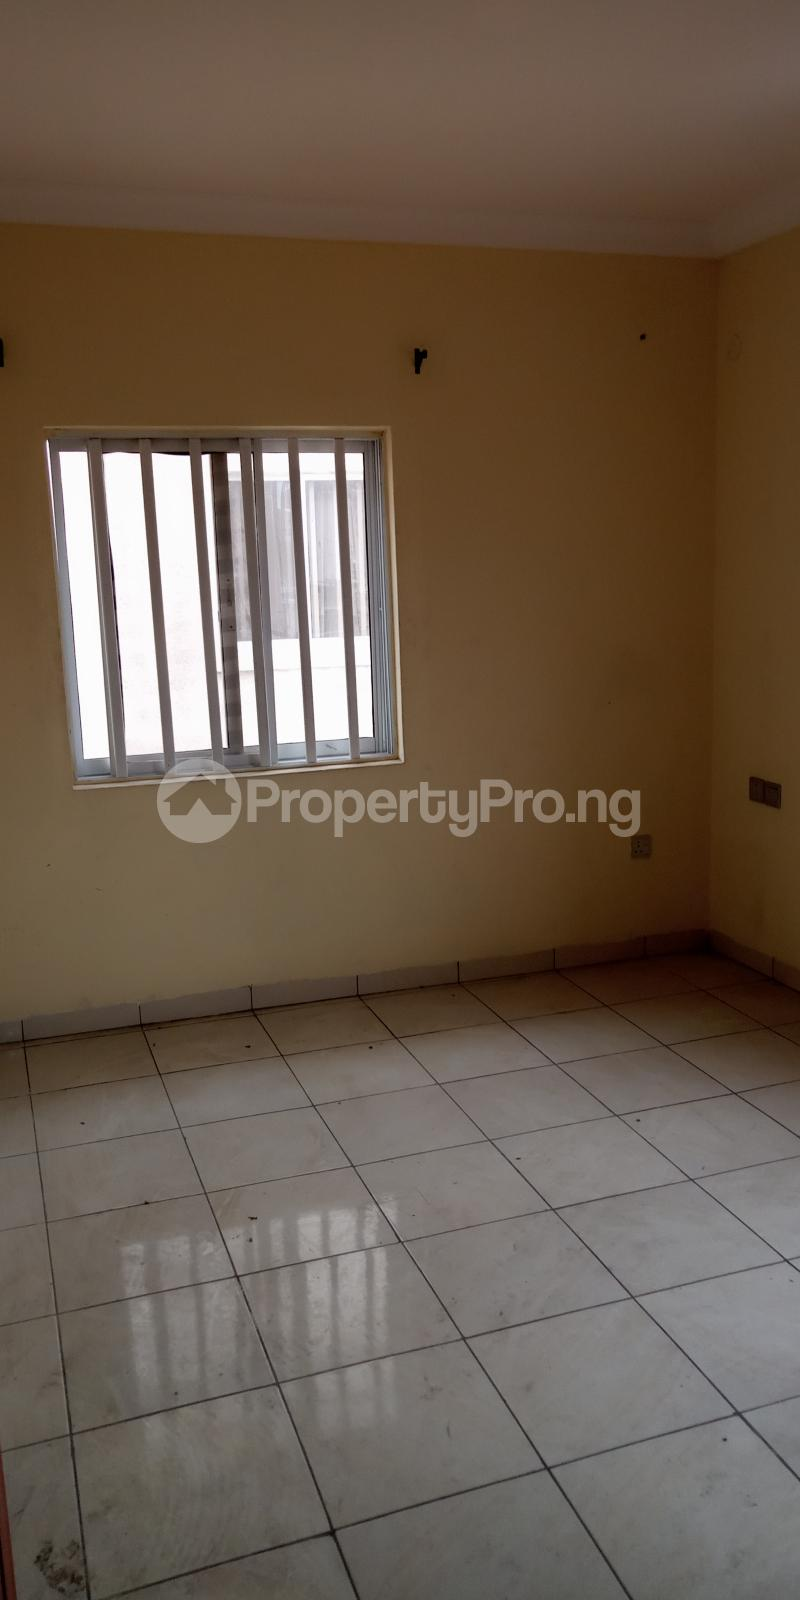 3 bedroom Flat / Apartment for rent Alagomeji Alagomeji Yaba Lagos - 2